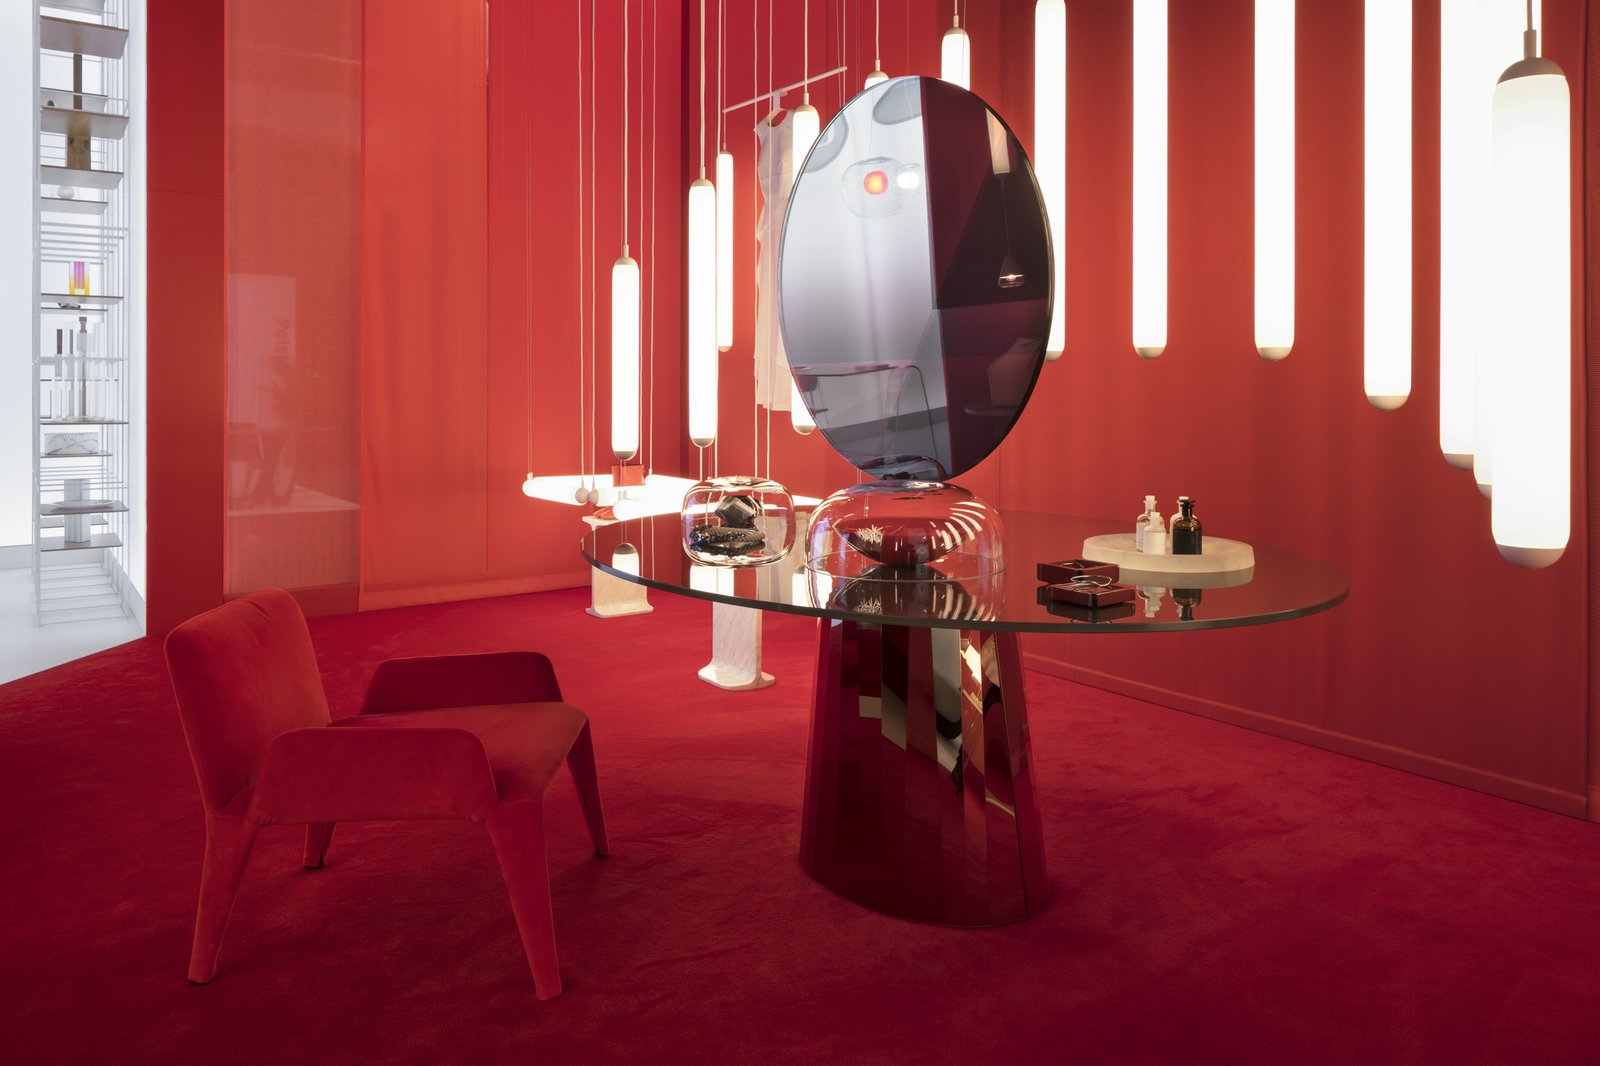 Dining Room, Chair, Table, Pendant Lighting, and Carpet Floor  Photo 3 of 9 in Q&A: Lucie Koldova Talks About Her Das Haus Concept For imm Cologne